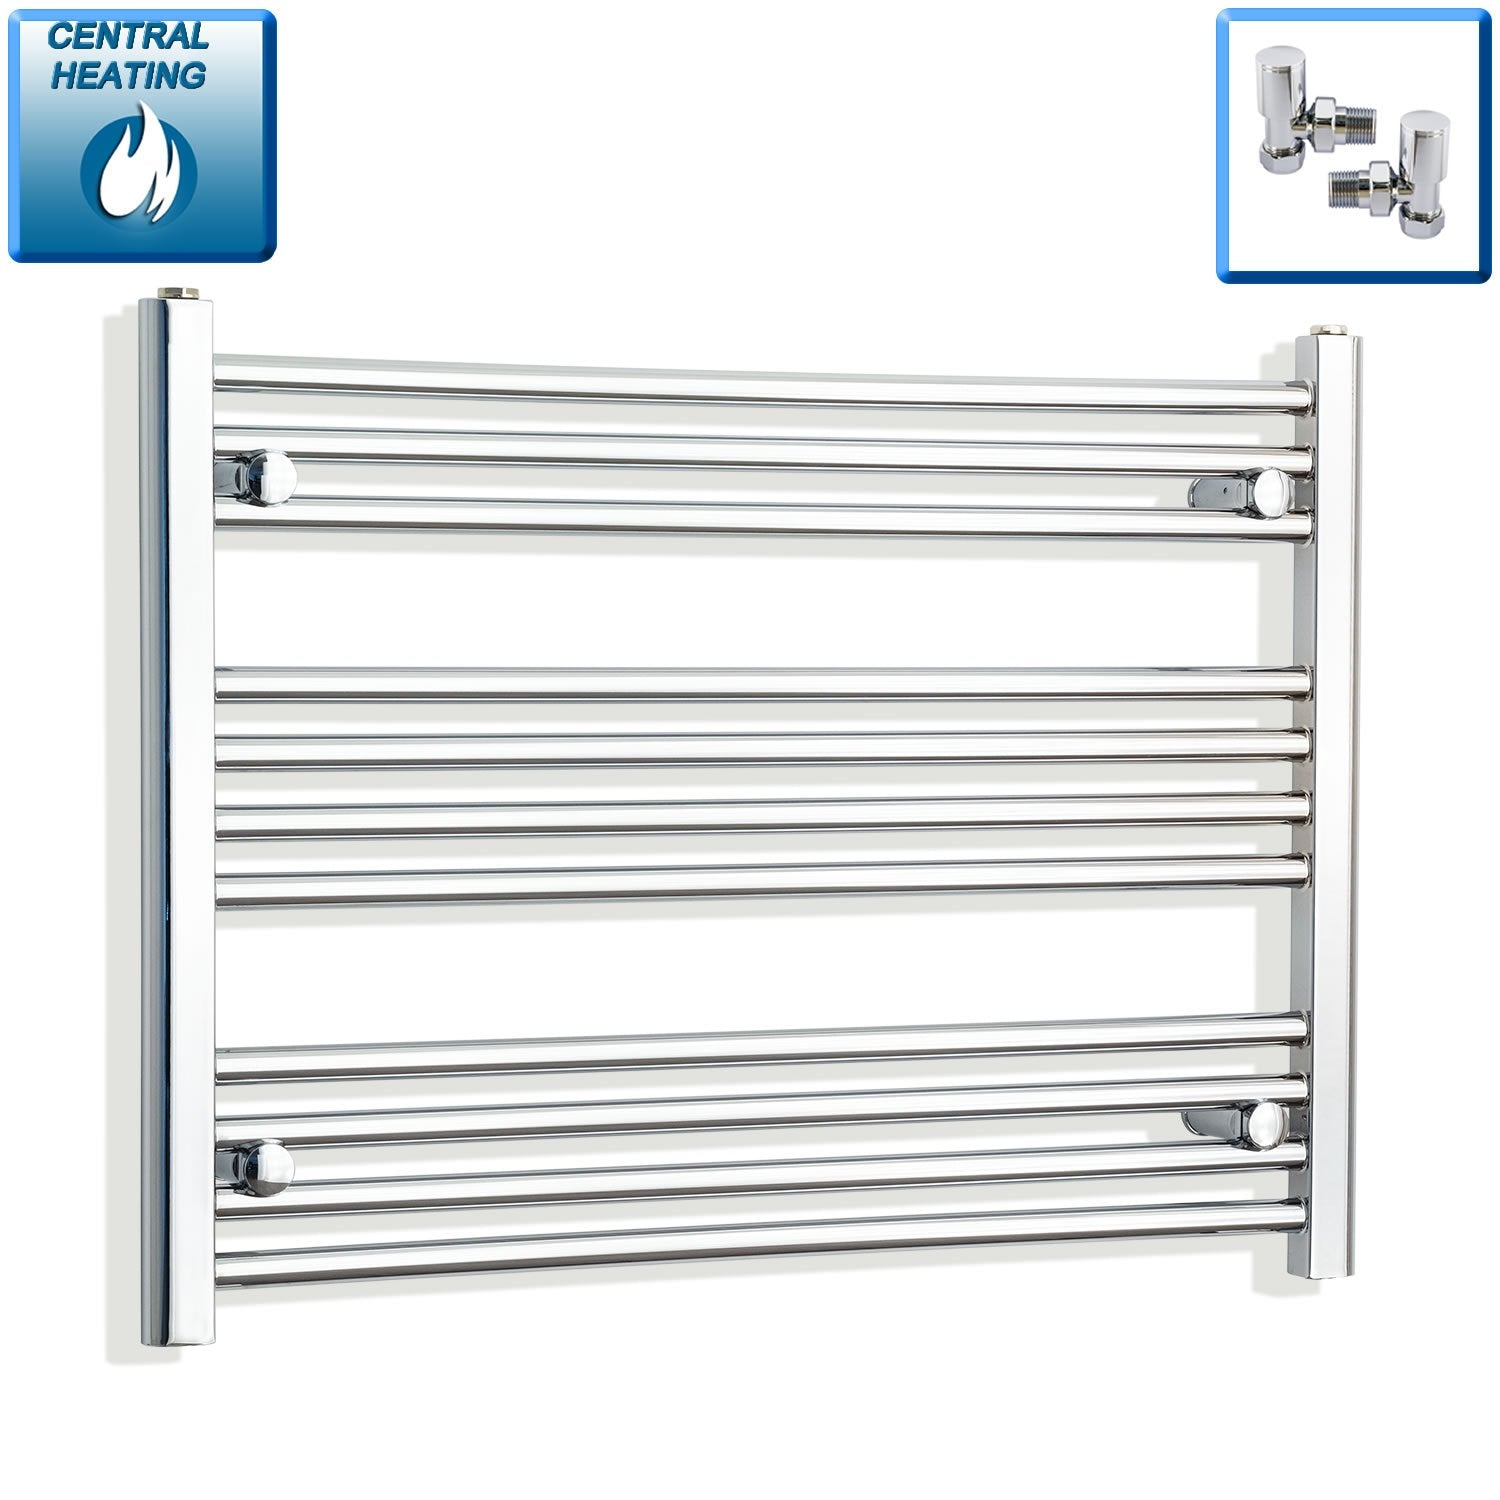 950mm Wide 600mm High Flat Chrome Heated Towel Rail Radiator HTR,With Angled Valve